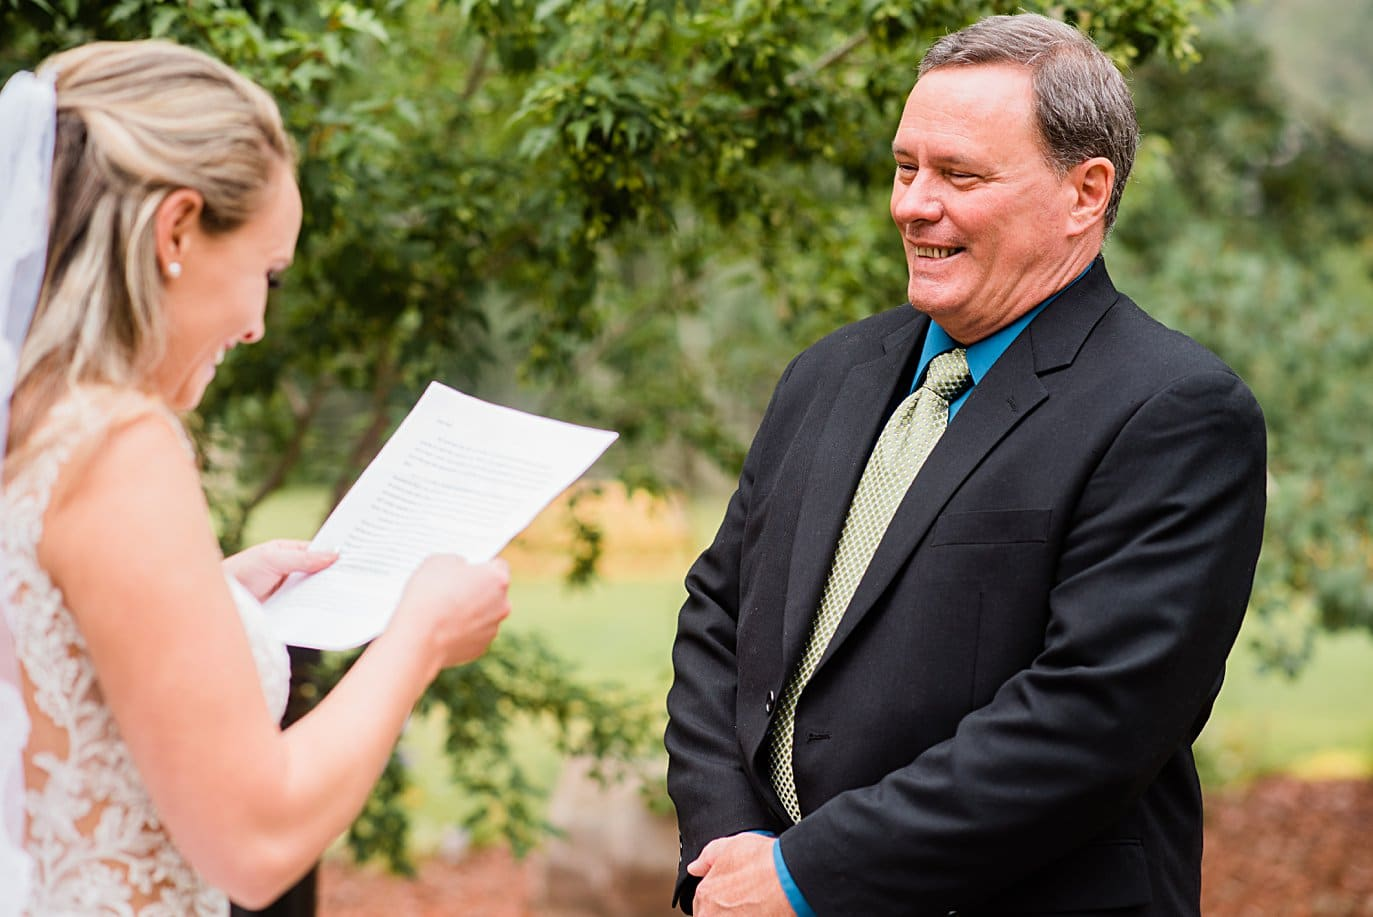 brides father listens to emotional letter on wedding day at Larkspur Vail Wedding by Vail Wedding photographer Jennie Crate